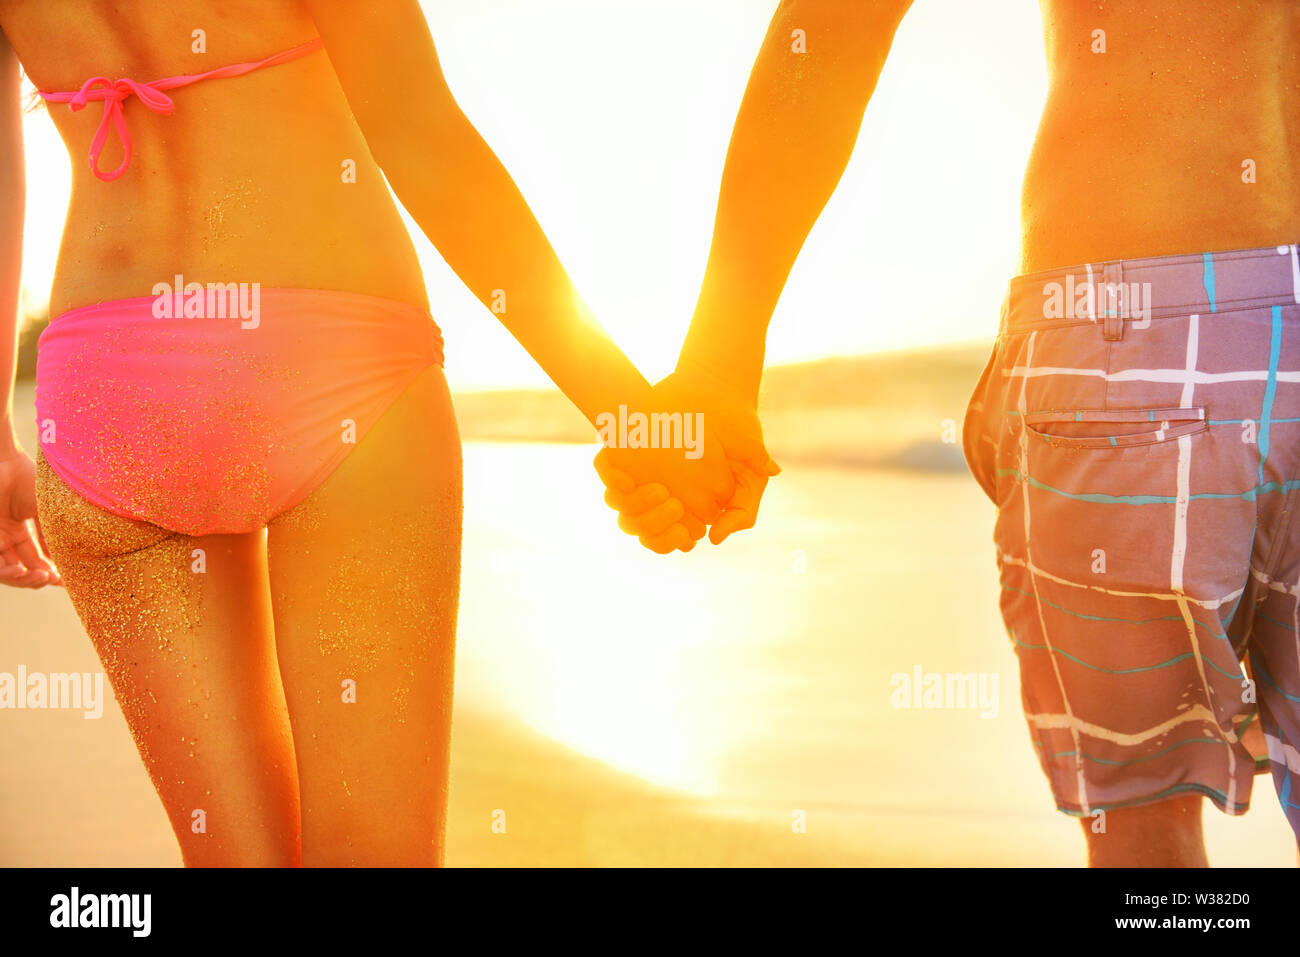 Holding hands couple in swimwear at beach. Rear view of fit couple's buttocks and legs as weight loss concept at beach sunset during summer vacations. Stock Photo